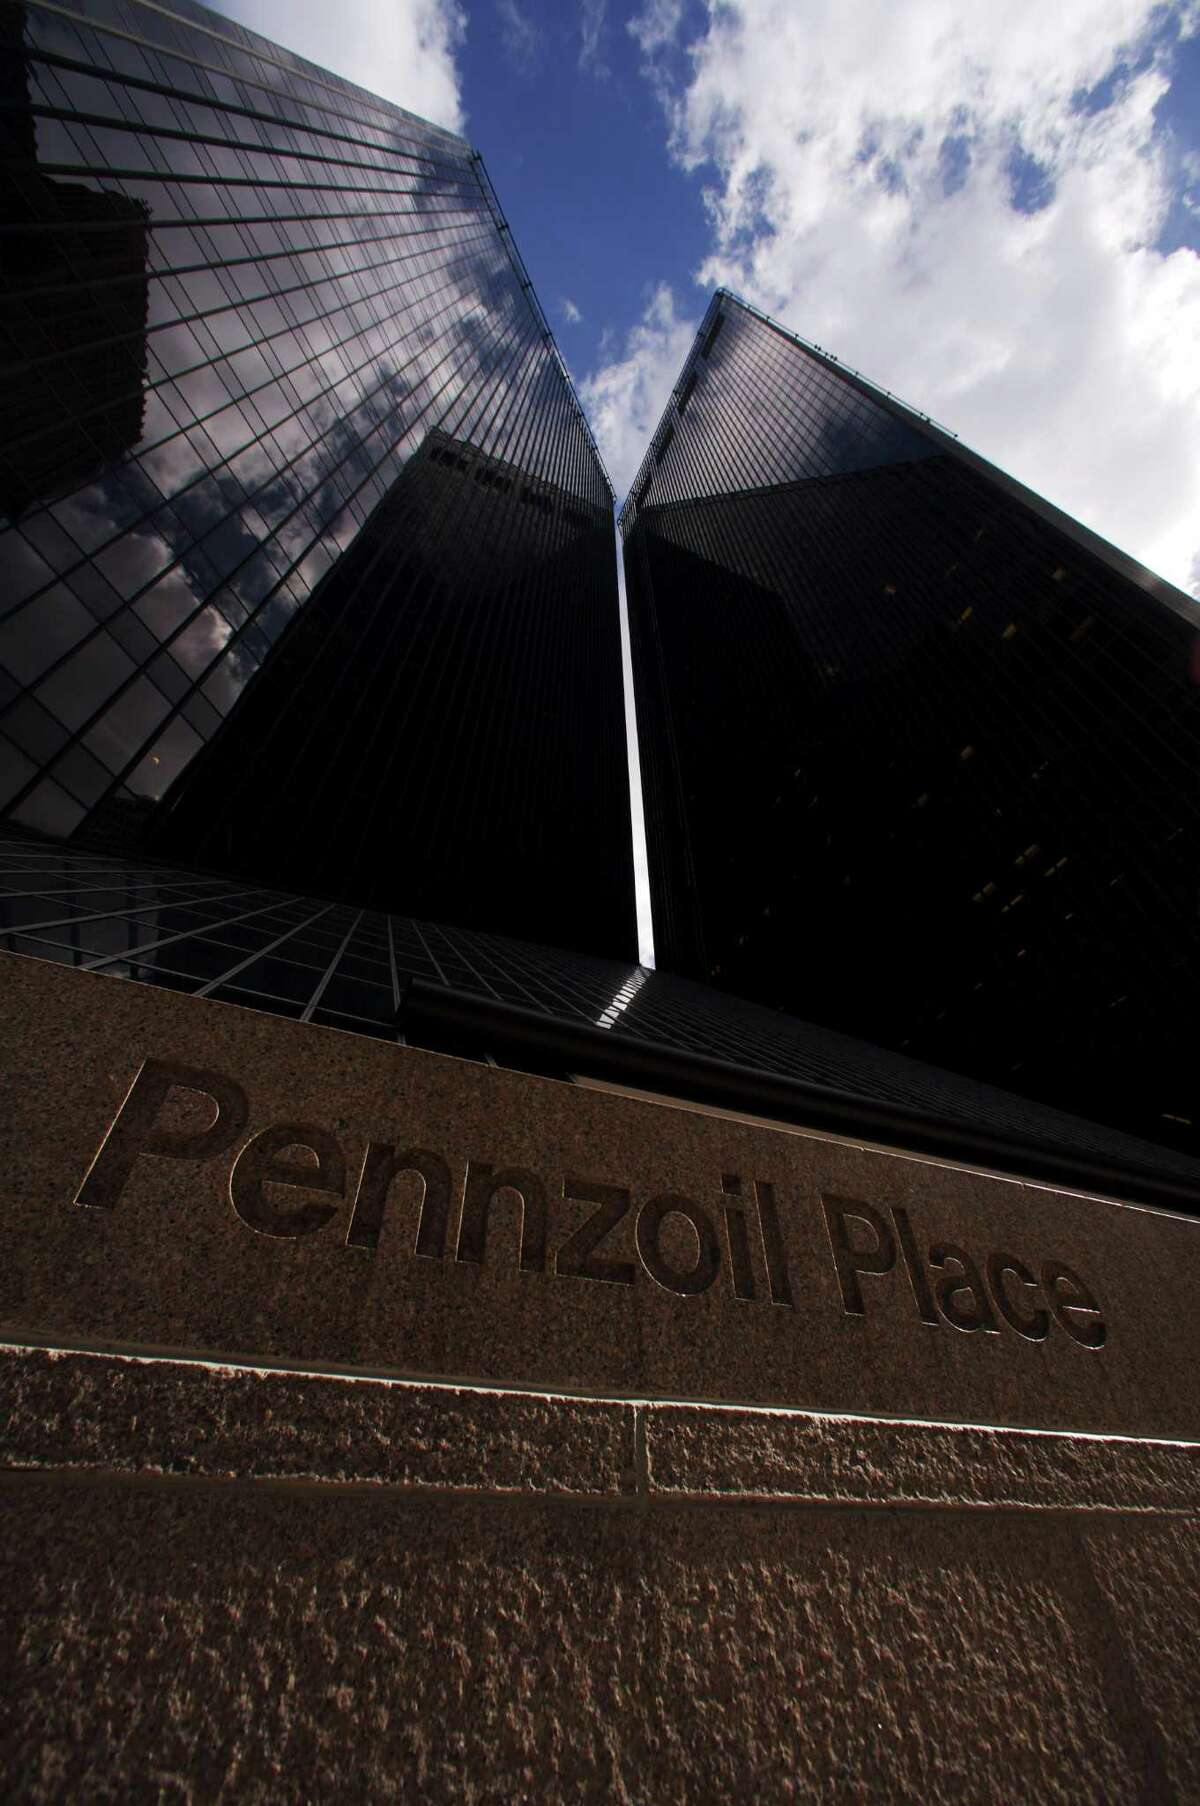 Pennzoil Place in downtown Houston